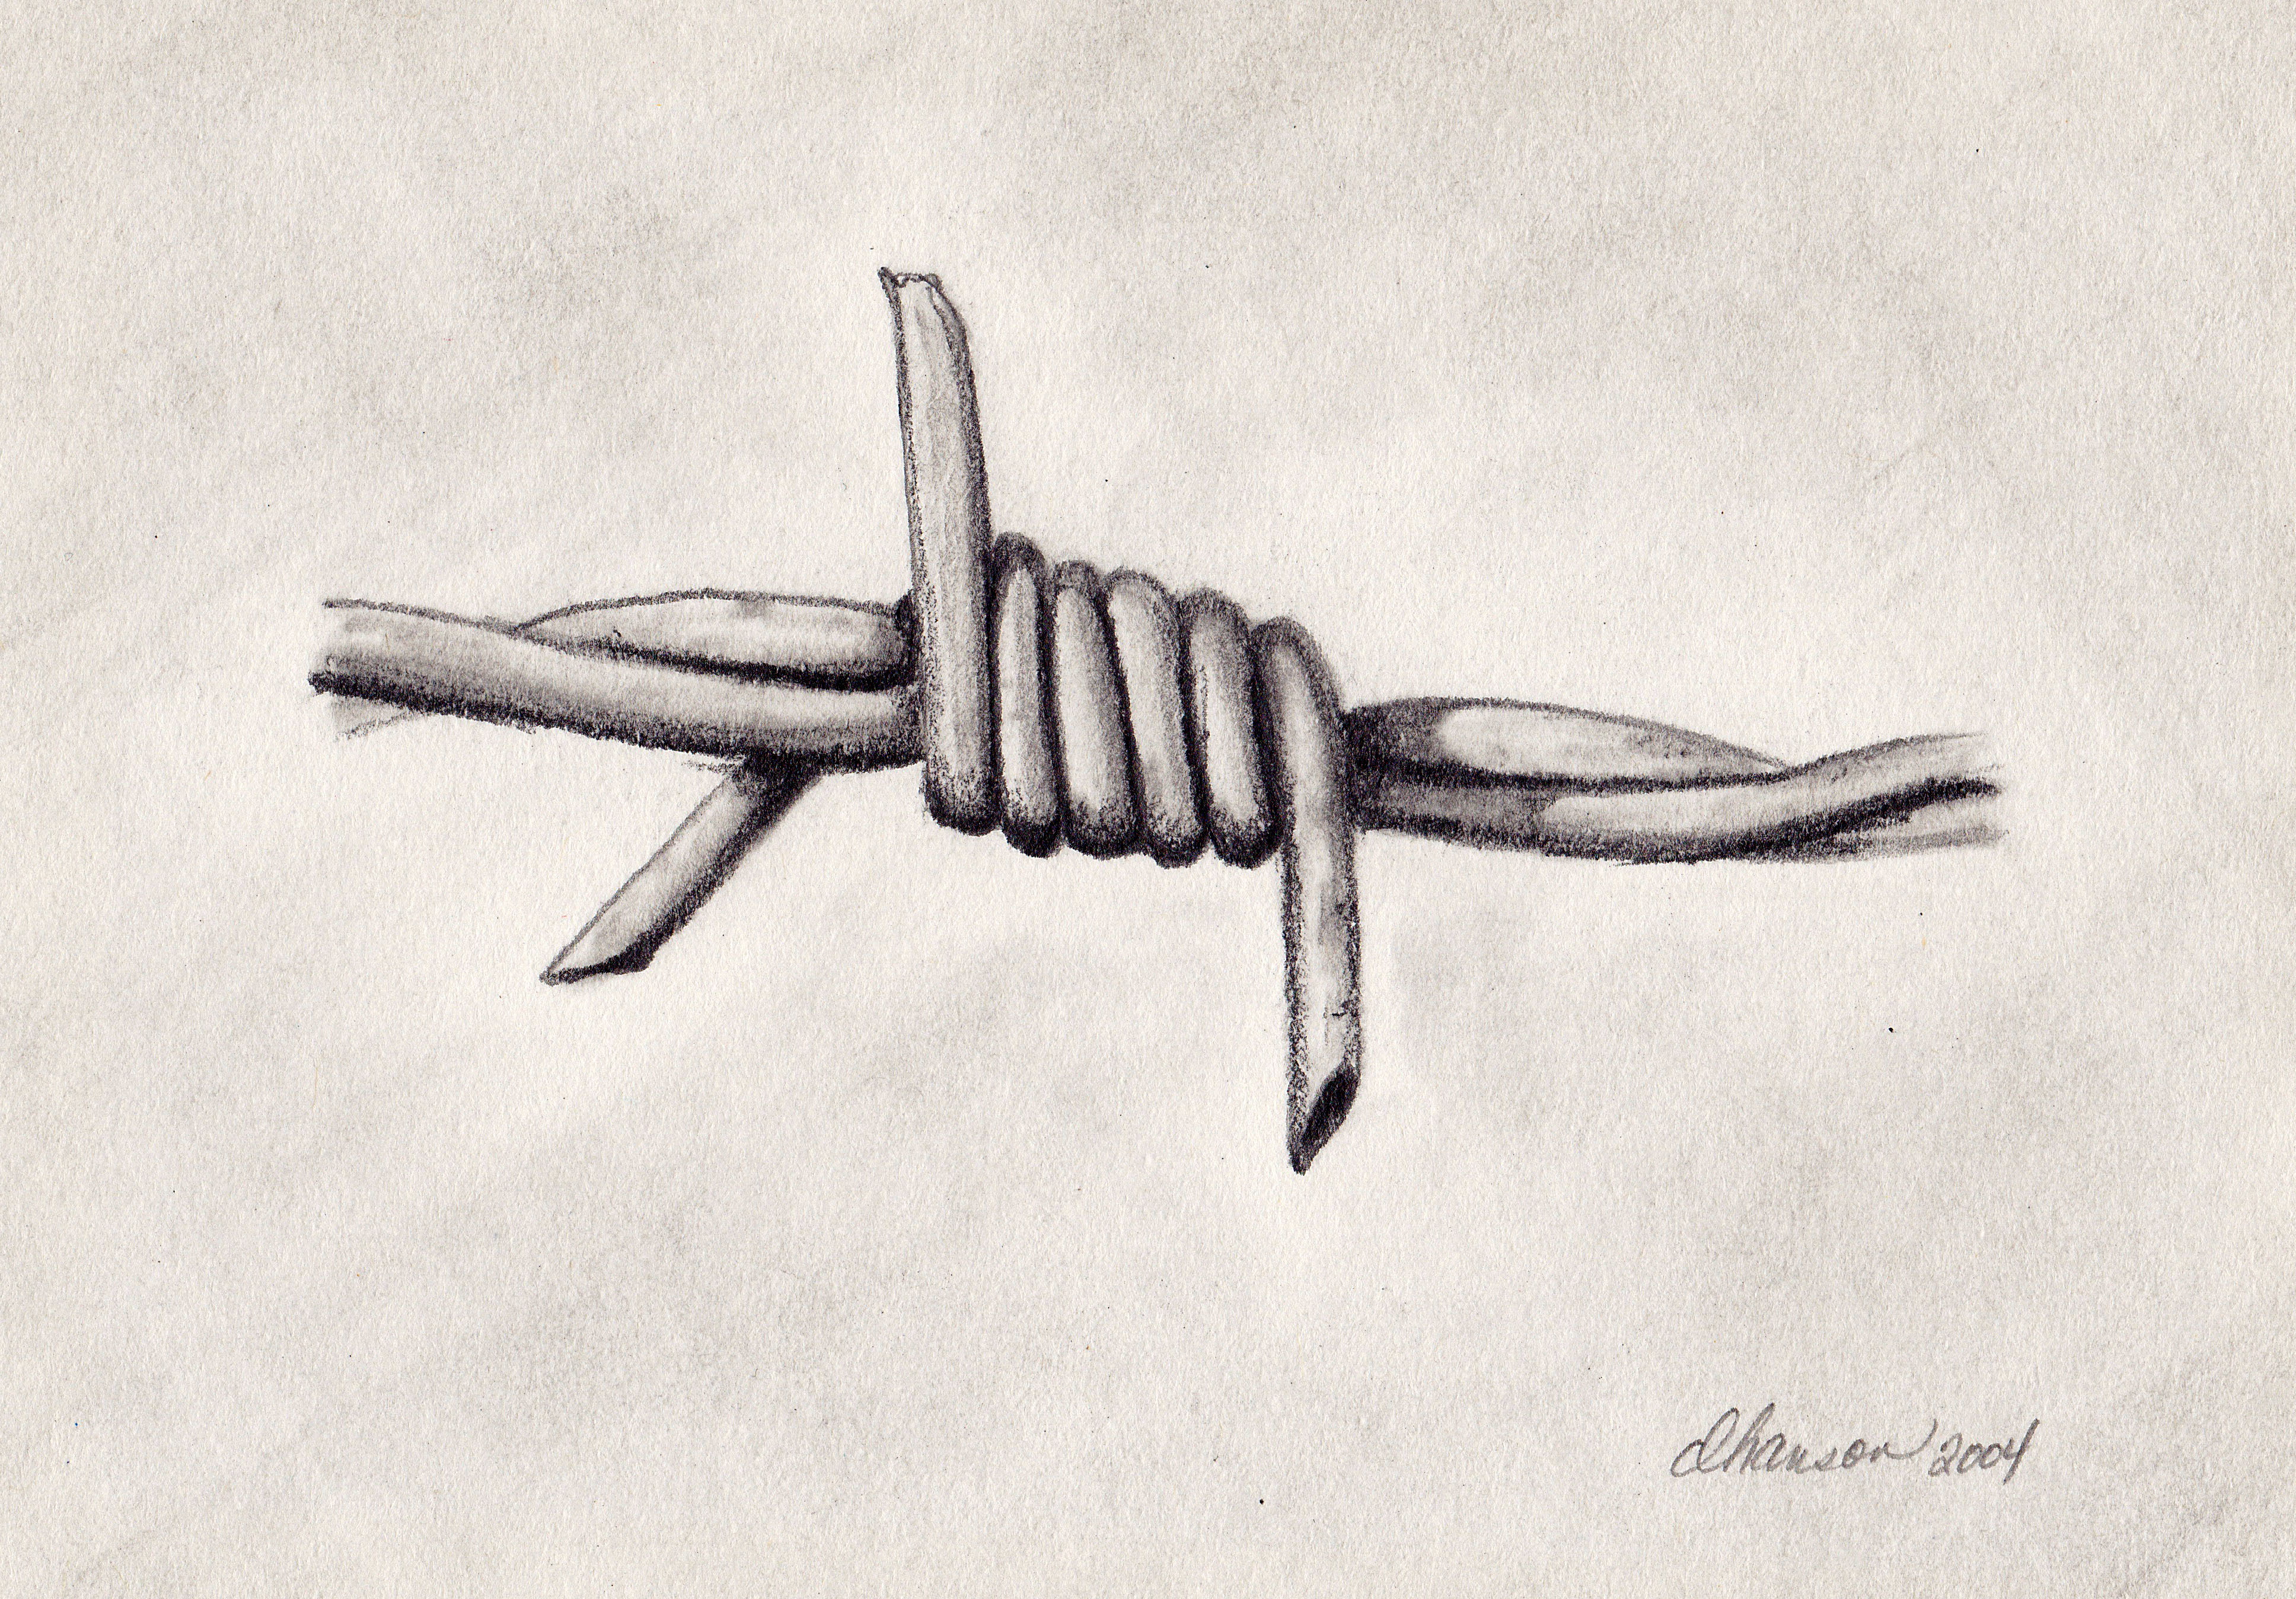 Barb Wire Drawing at GetDrawings.com | Free for personal use Barb ...